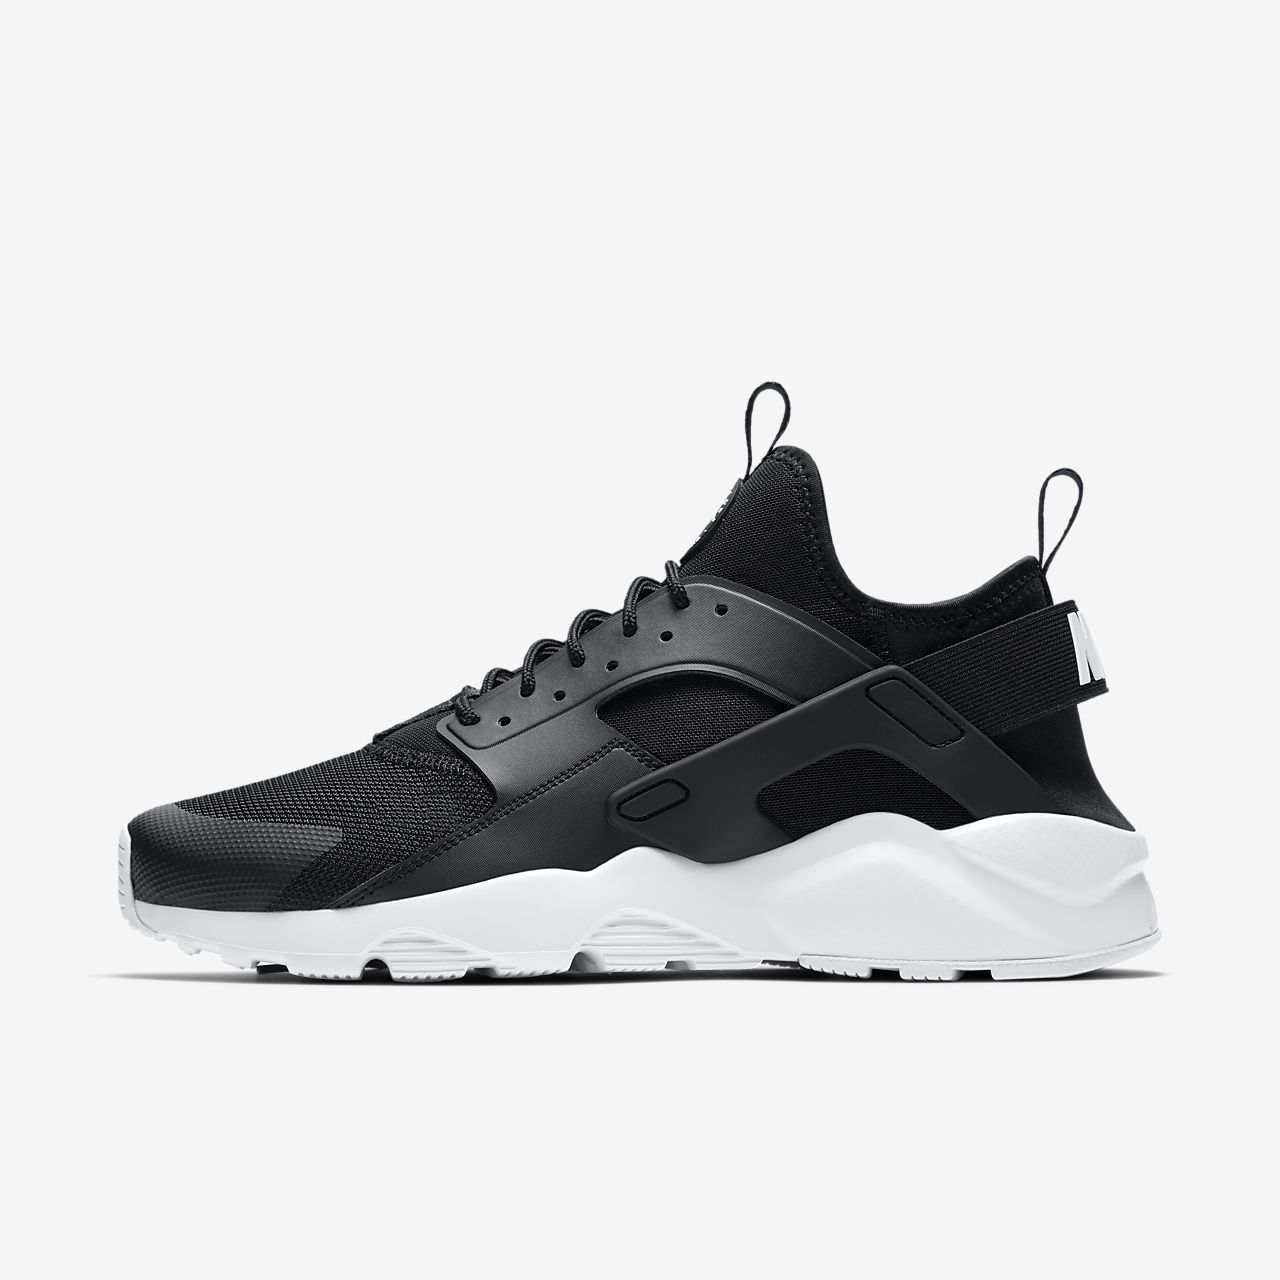 895fa616a26e Nike Air Huarache Ultra Men s Shoe. Nike.com GB